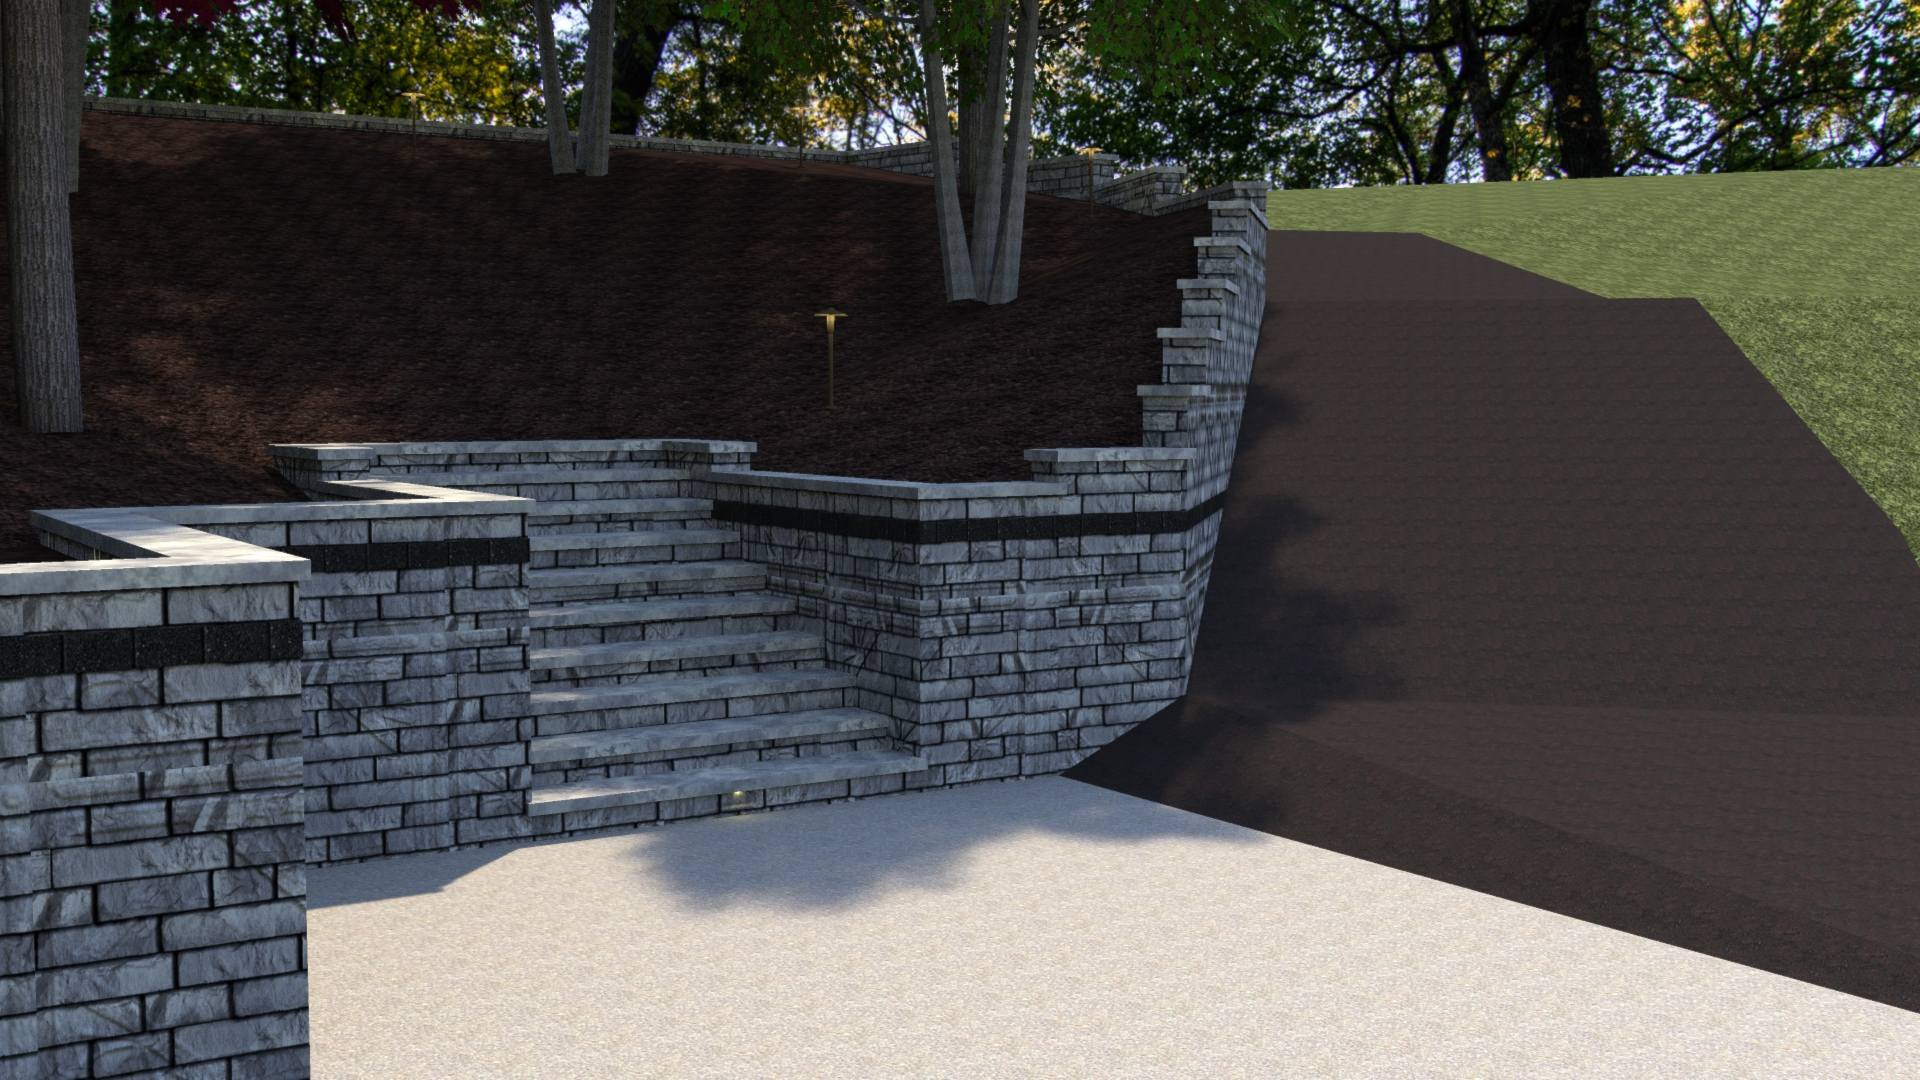 Gull Lake Retaining Wall Renovation 1